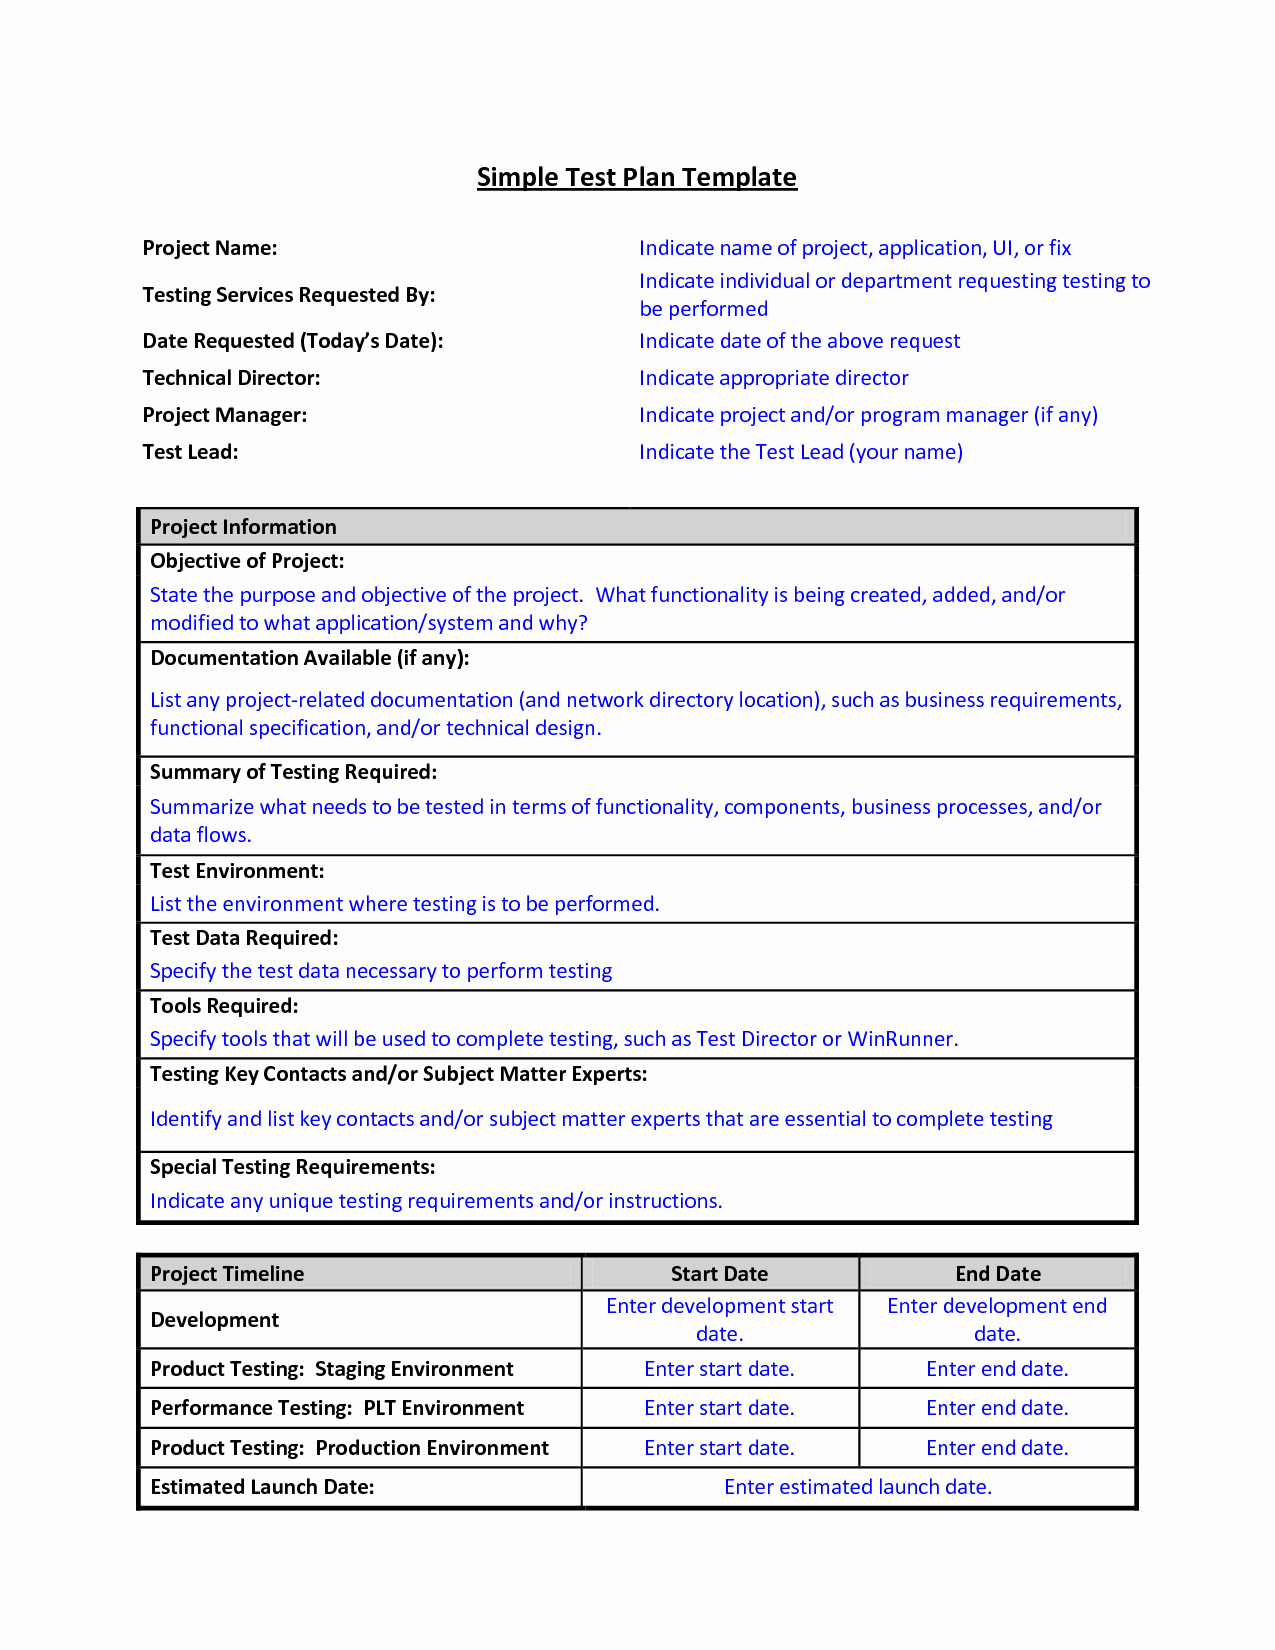 Simple Test Plan Template Beautiful Test Plan Template format Sample Work Word Simple